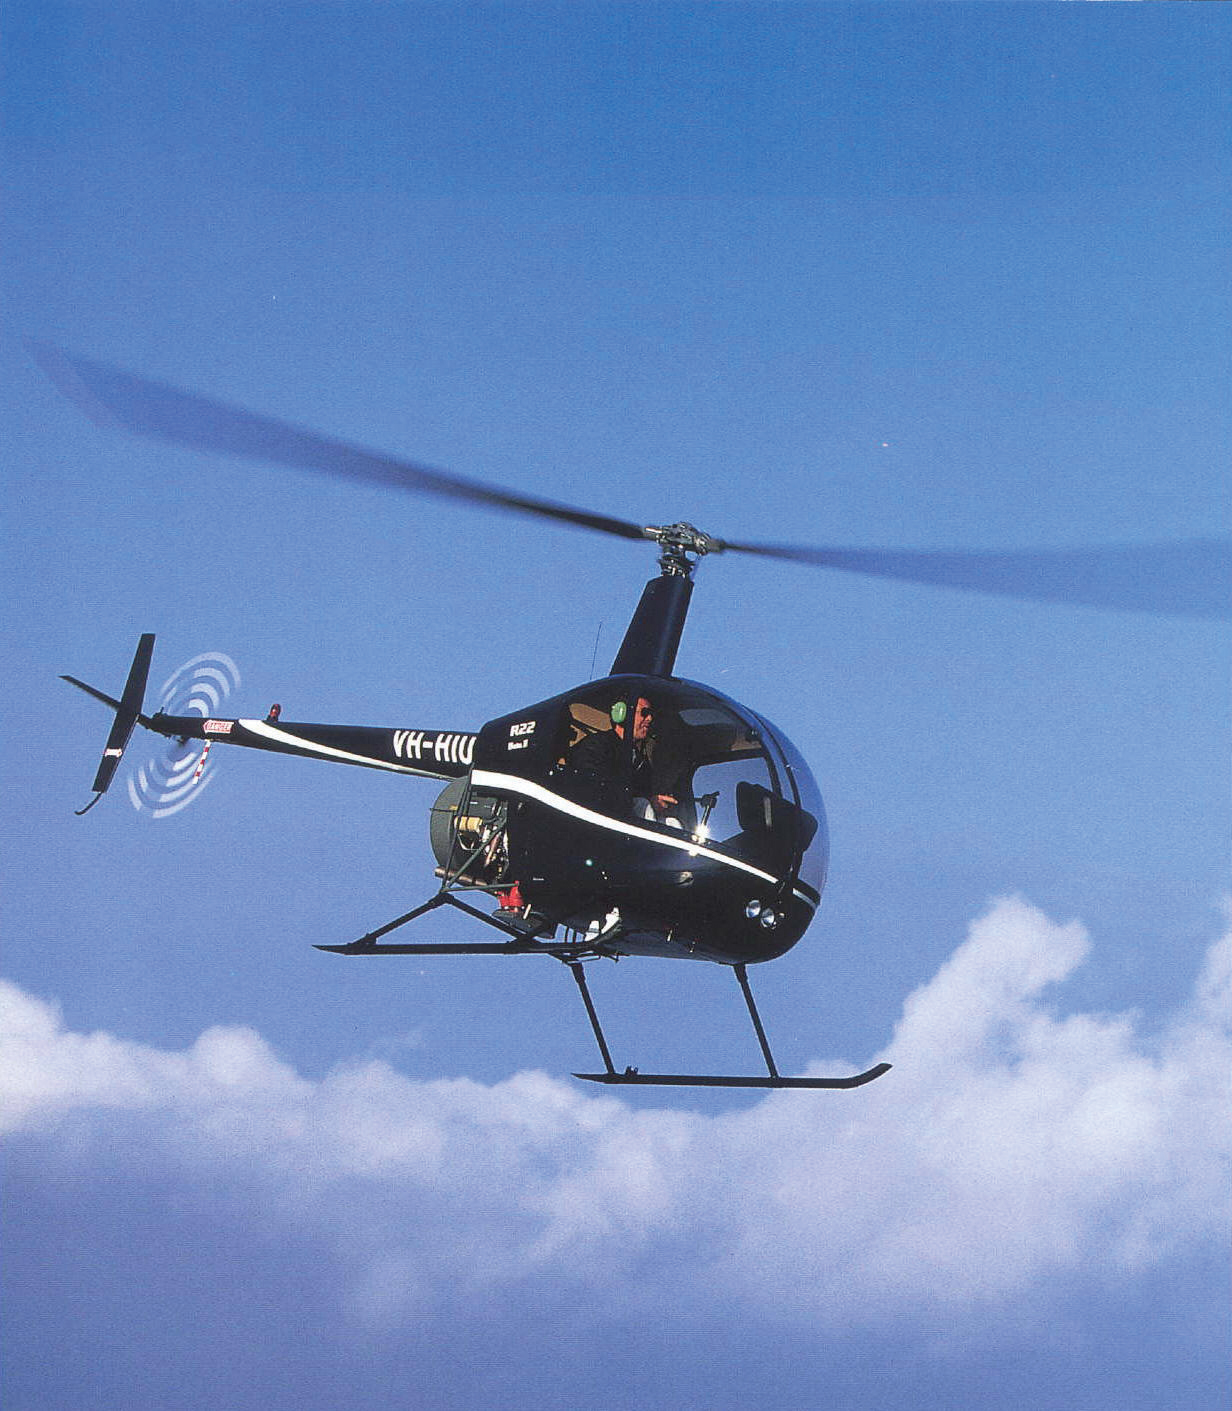 Helicopter in the Sky Wallpaper 655.77 Kb